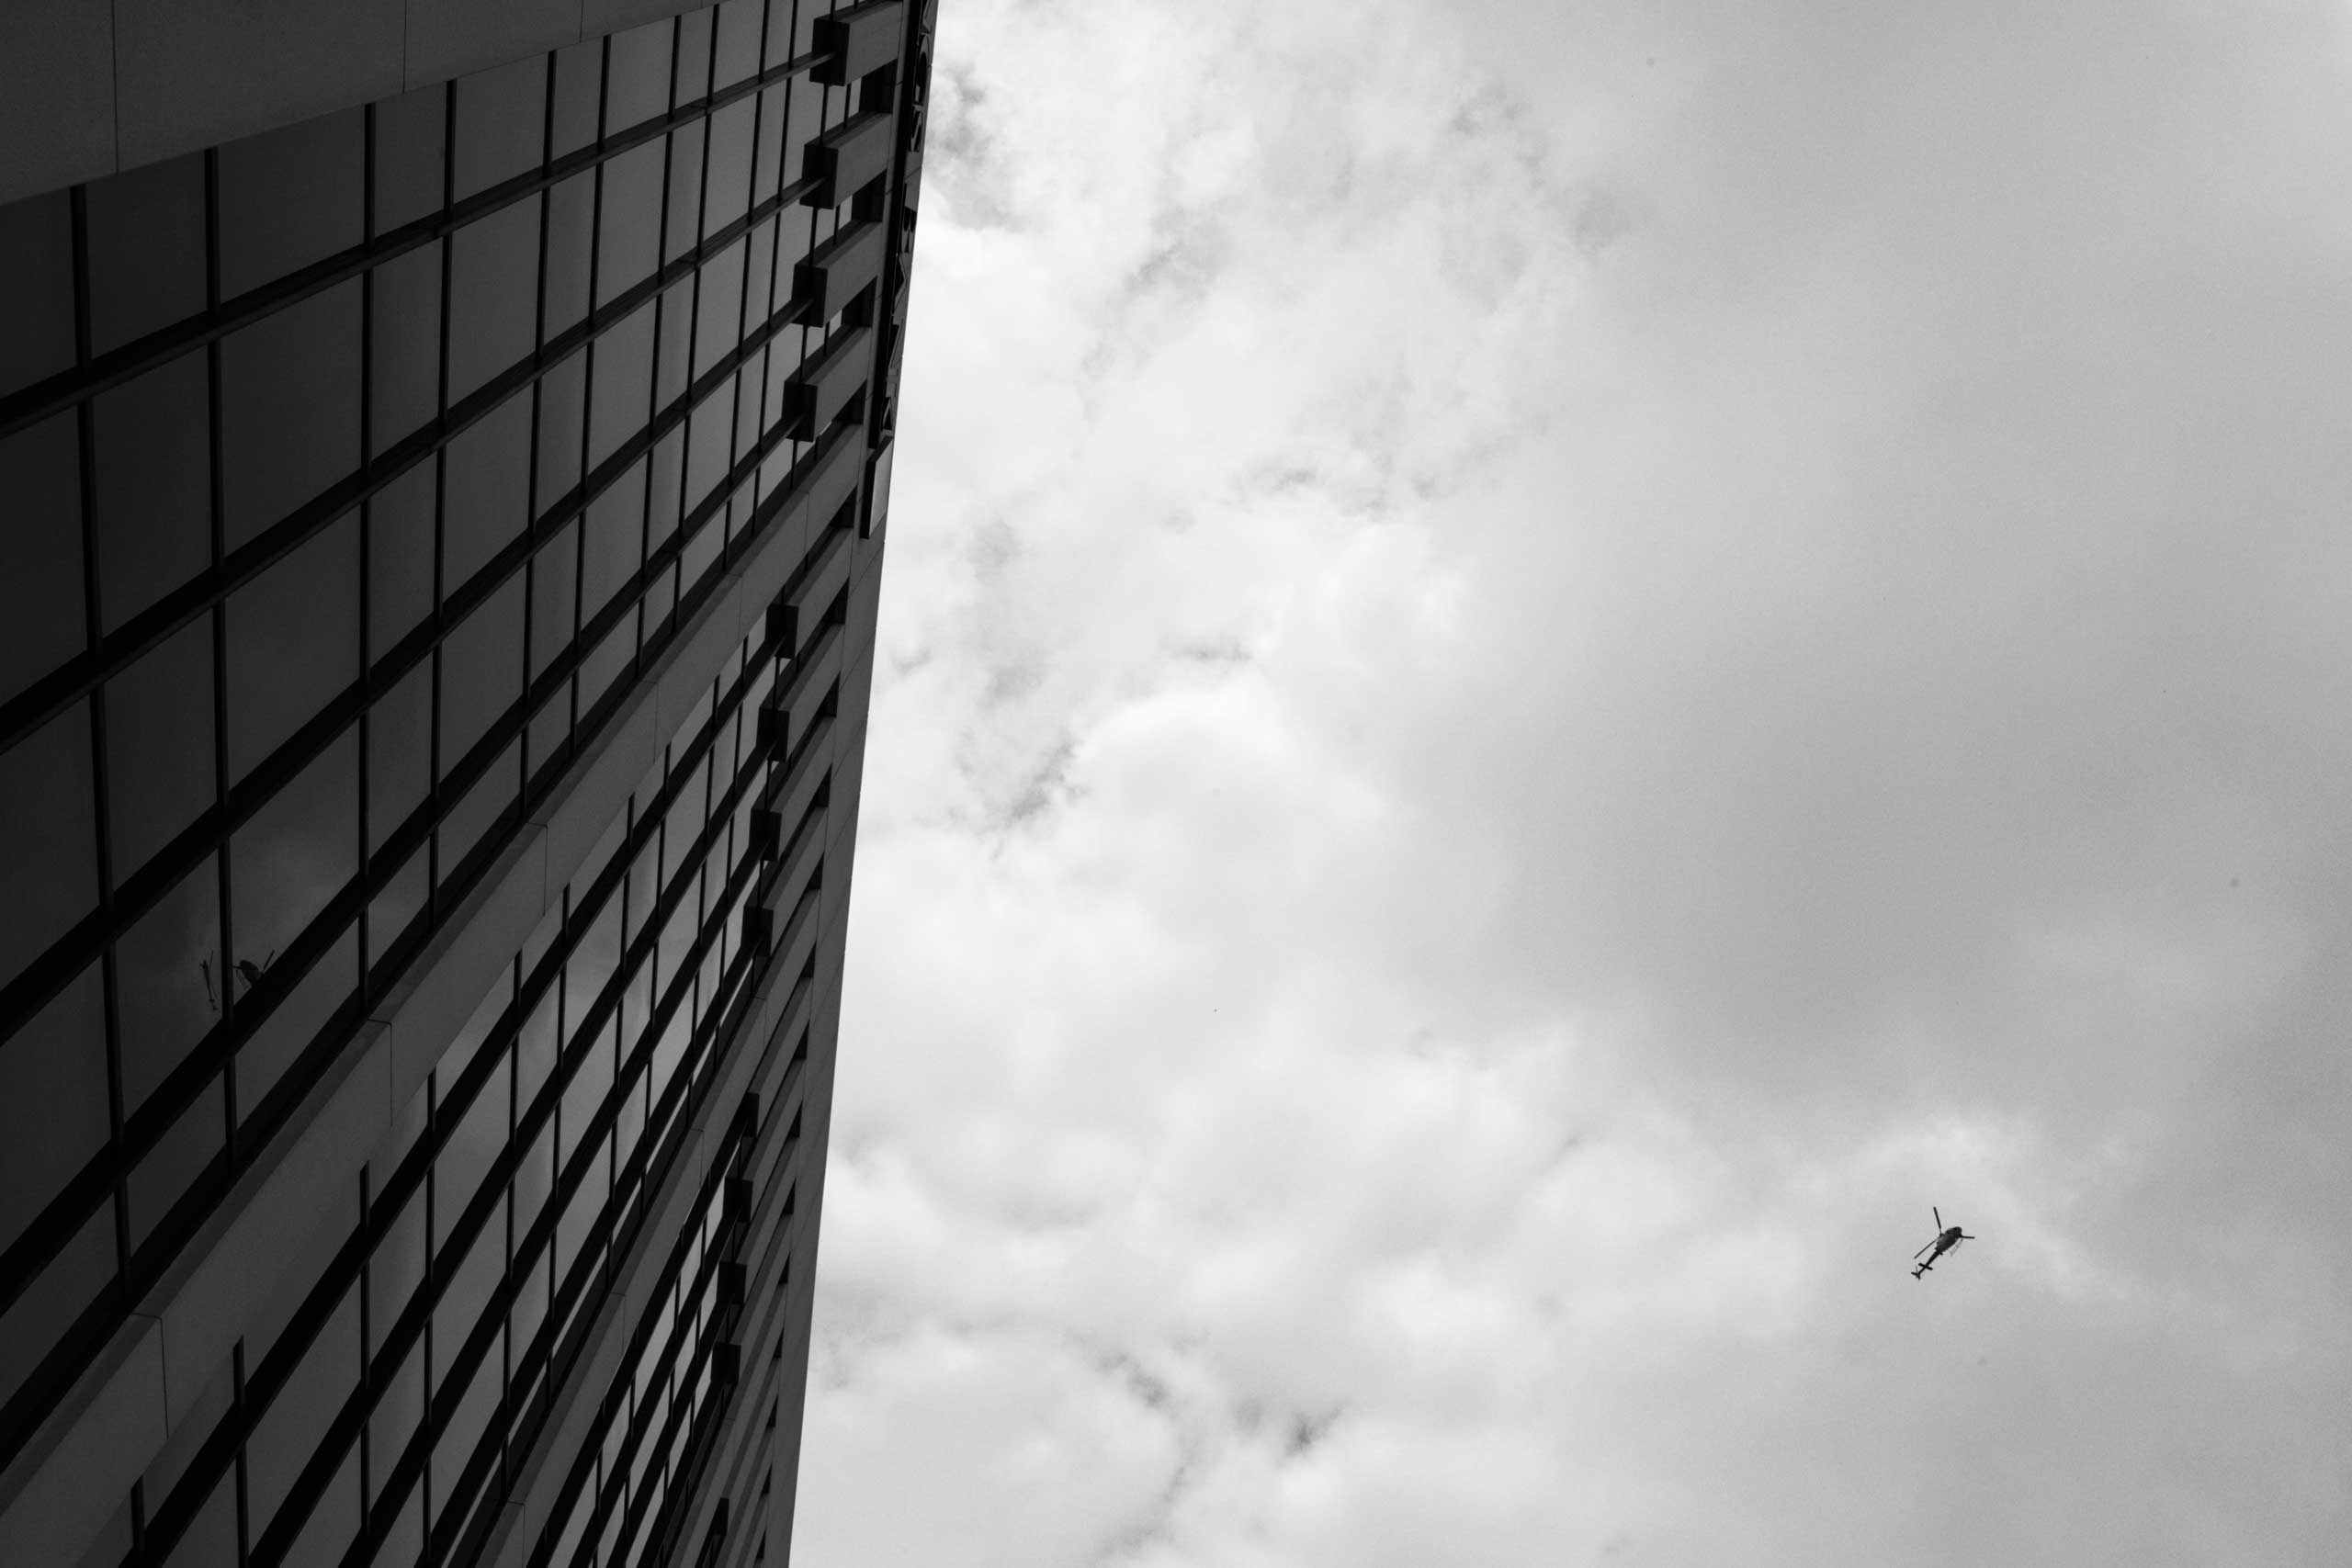 July 16, 2016 - Cleveland, Ohio: A helicopter is flying over downtown while the preperations for the Republican National Convention are still taking place.